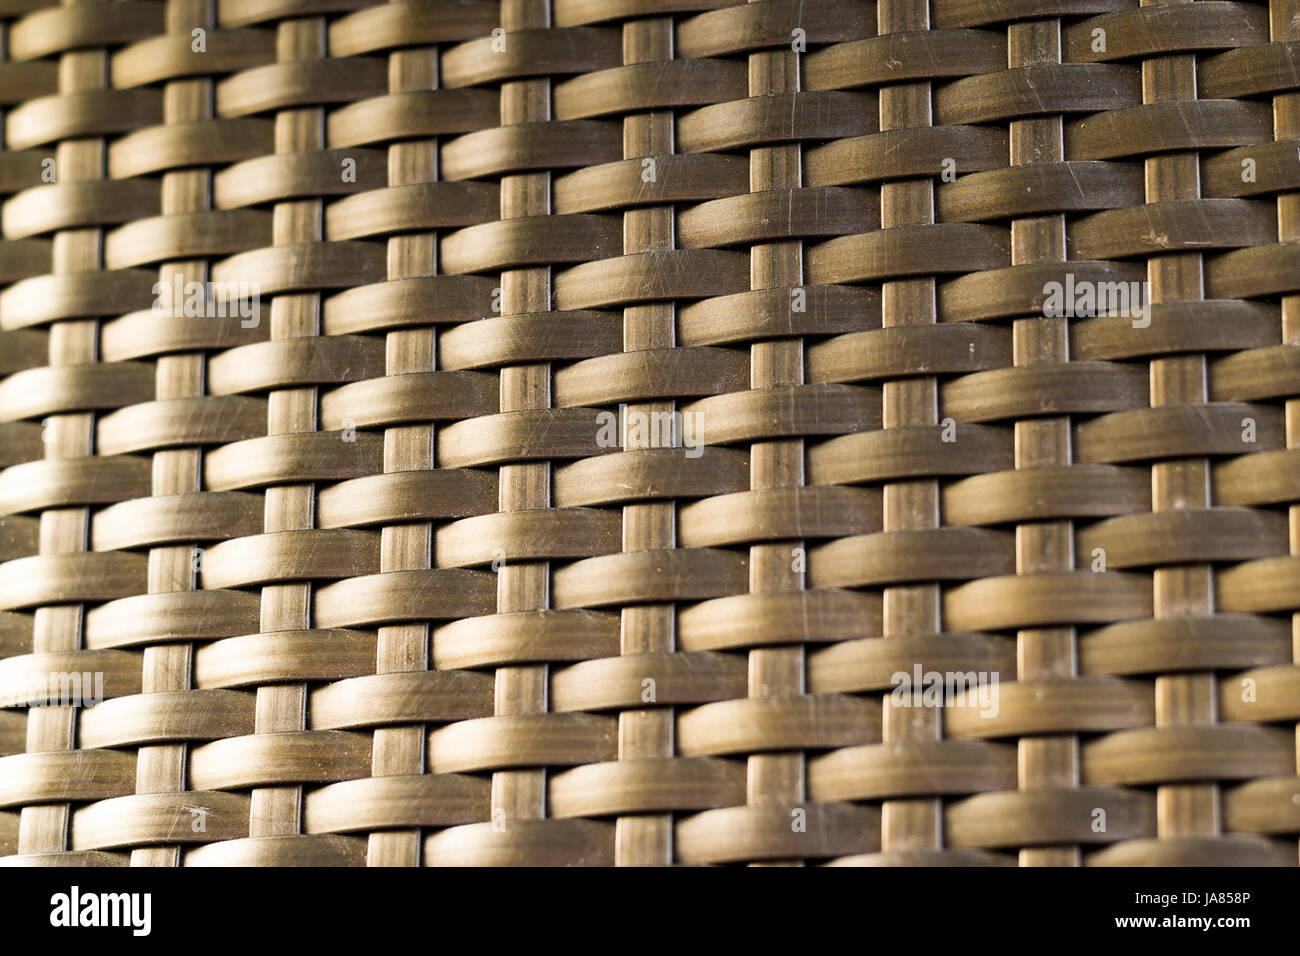 Detail Wood Strong Basket Cane Weave Decor Bamboo Rattan